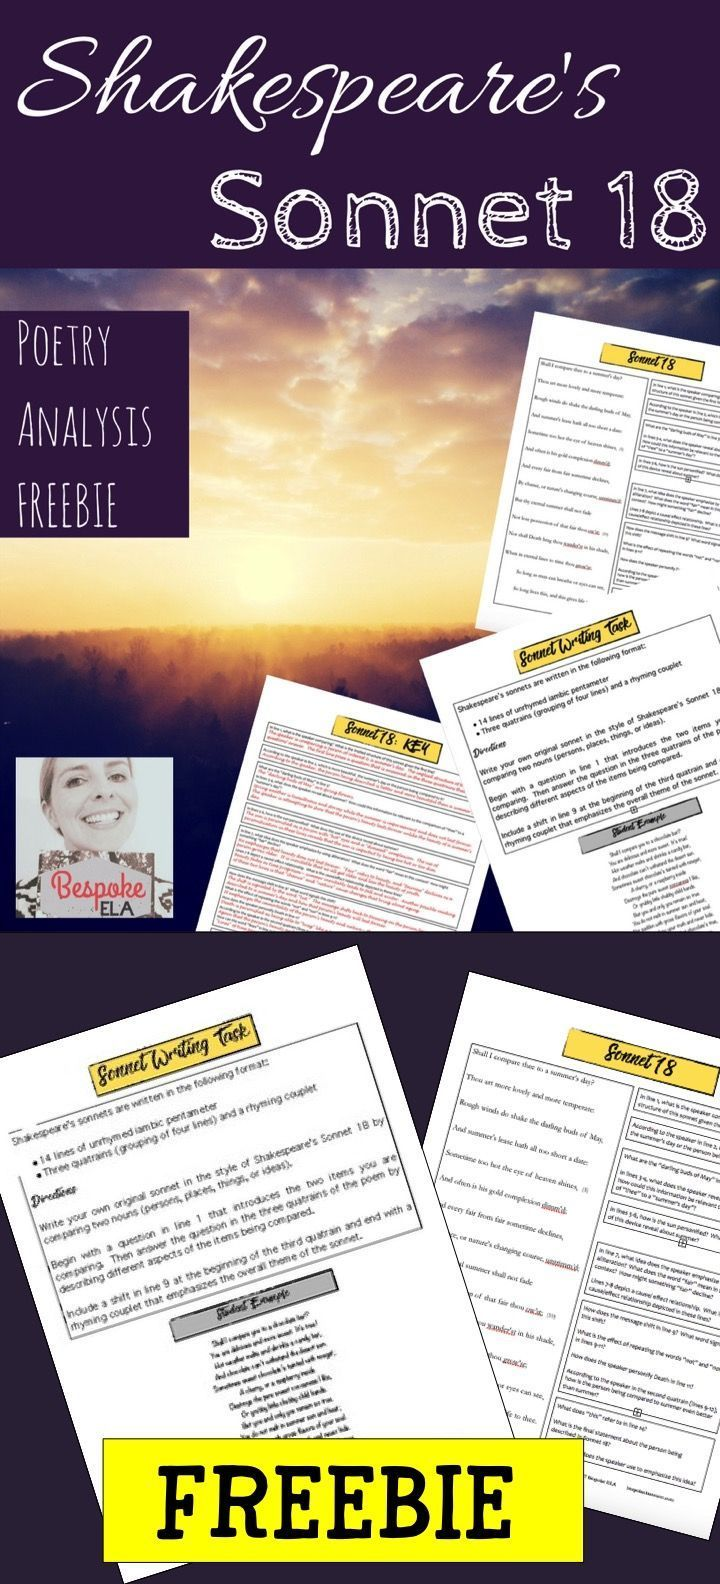 In this FREEBIE by Bespoke ELA, you will find a close reading activity for Shakespeare's Sonnet 18 that includes an answer key to the close reading questions. This activity also asks students to write their own Shakespearean sonnets in which they compare